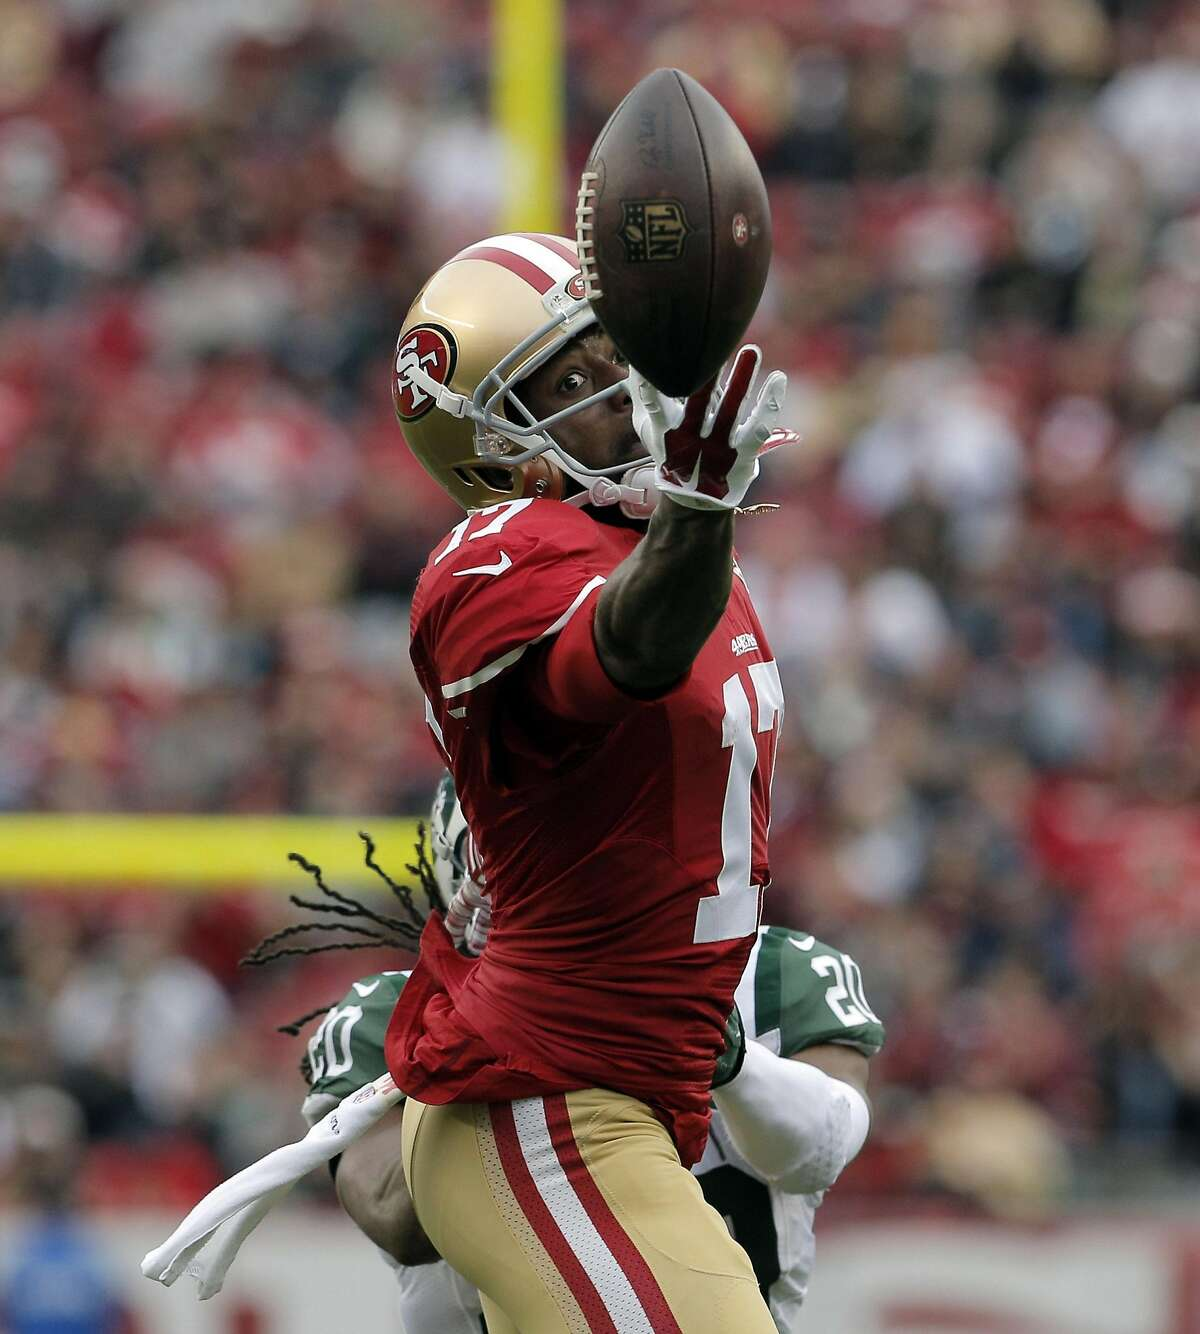 Jeremy Kerley (17) can't reach a pass from Colin Kaepernick (7) in the first half as the San Francisco 49ers played the New York Jets at Levi's Stadium in Santa Clara, Calif., on Sunday, December 11, 2016.